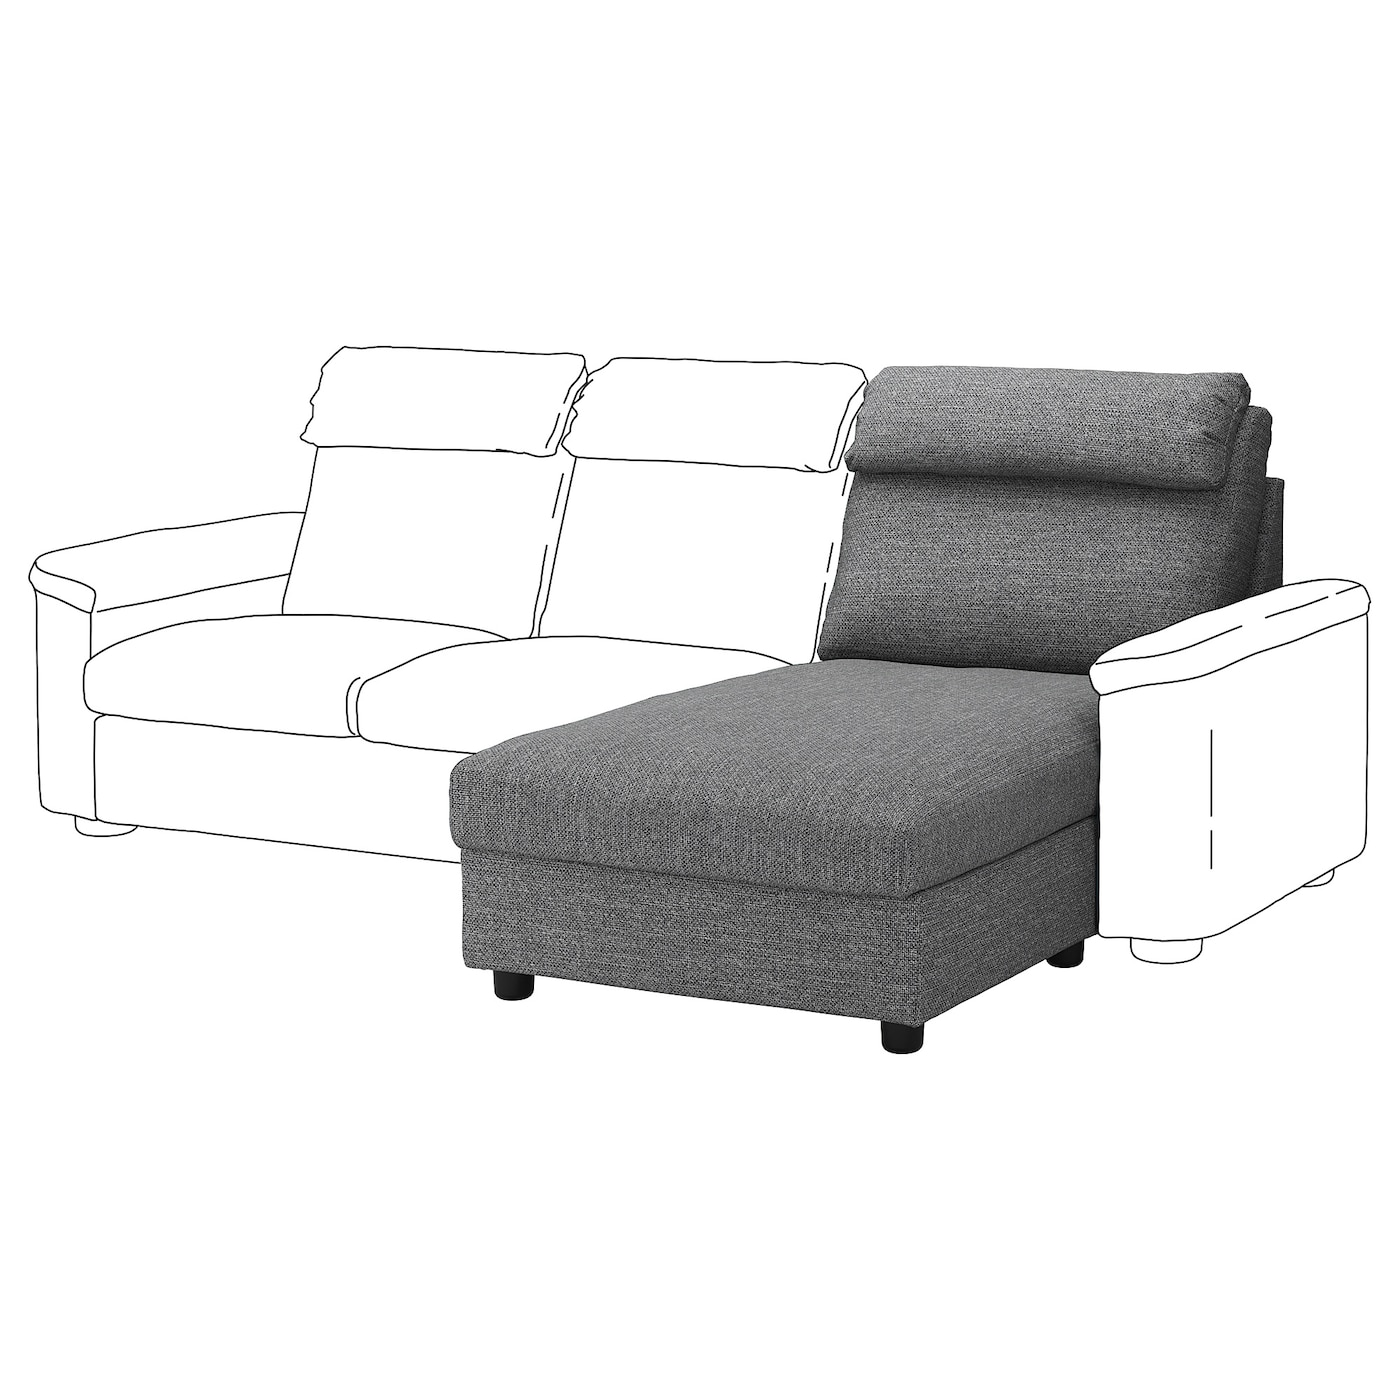 Ikea Lidhult Cover For Chaise Longue Section